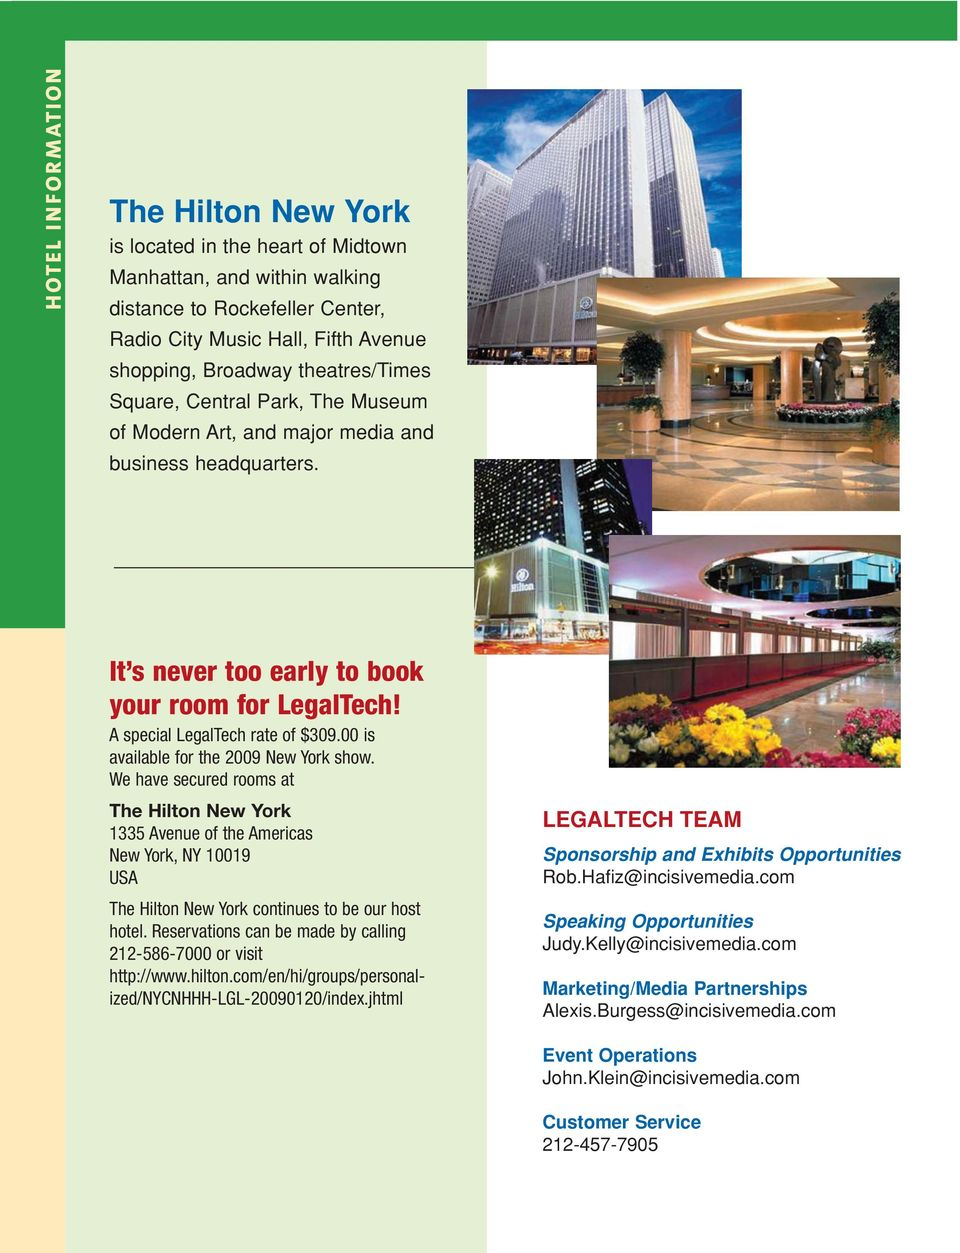 00 is available for the 2009 New York show. We have secured rooms at The Hilton New York 1335 Avenue of the Americas New York, NY 10019 USA The Hilton New York continues to be our host hotel.